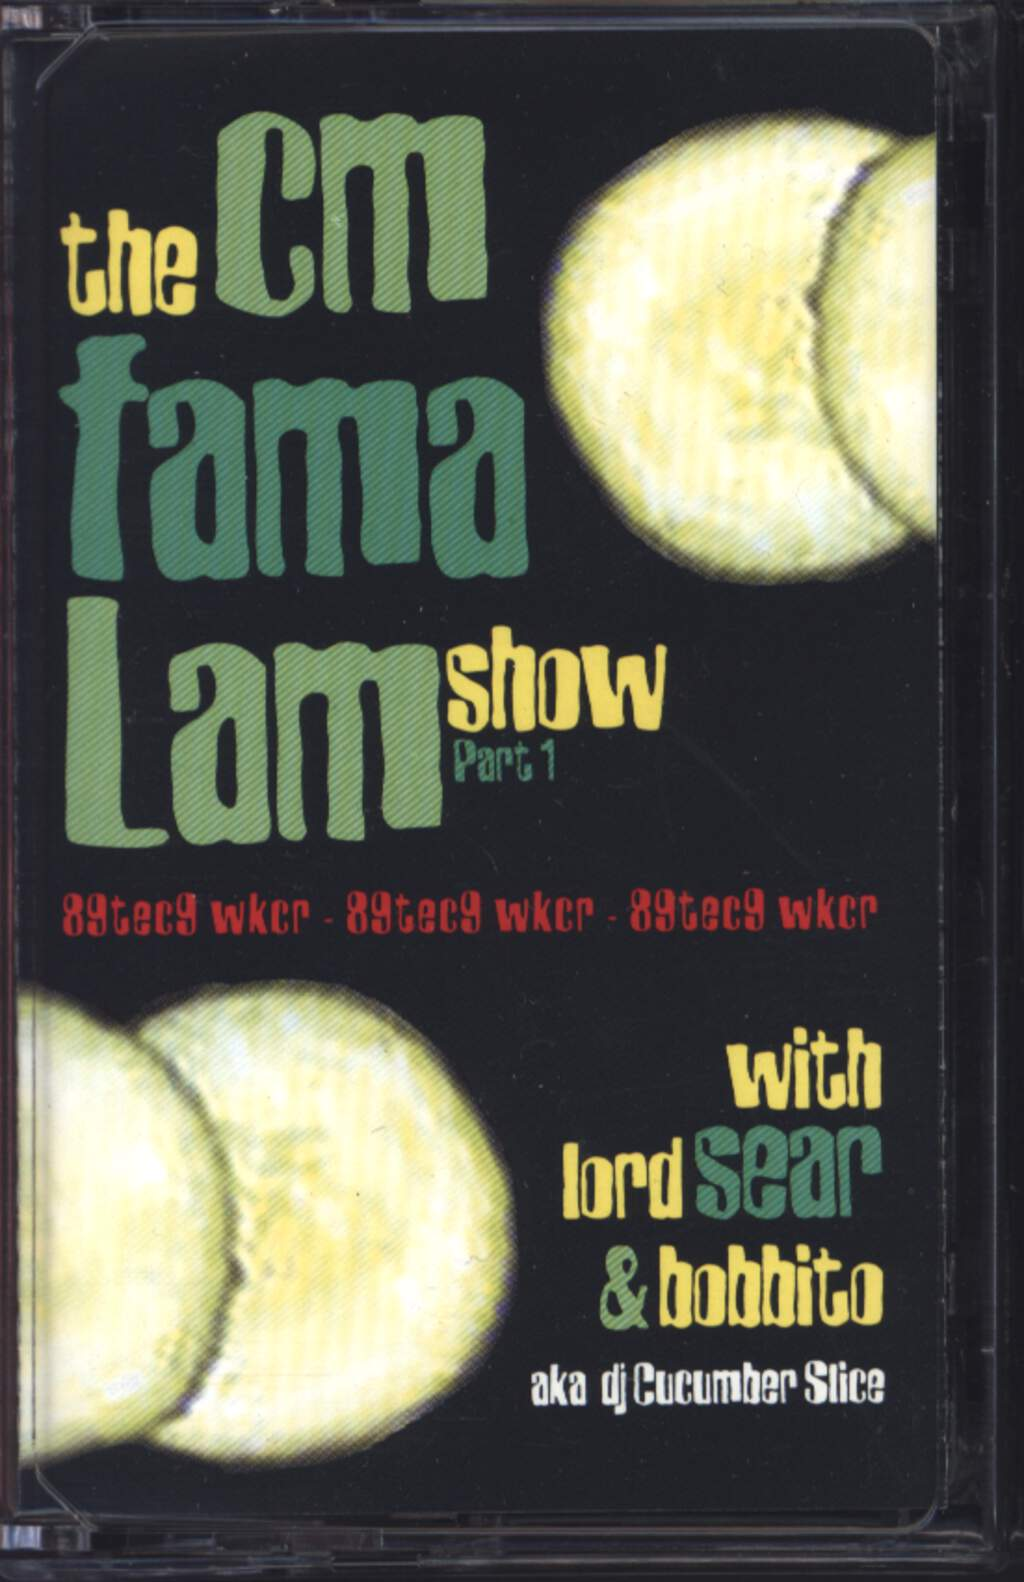 Various: The CM Fama Lam Show Part 1, Compact Cassette